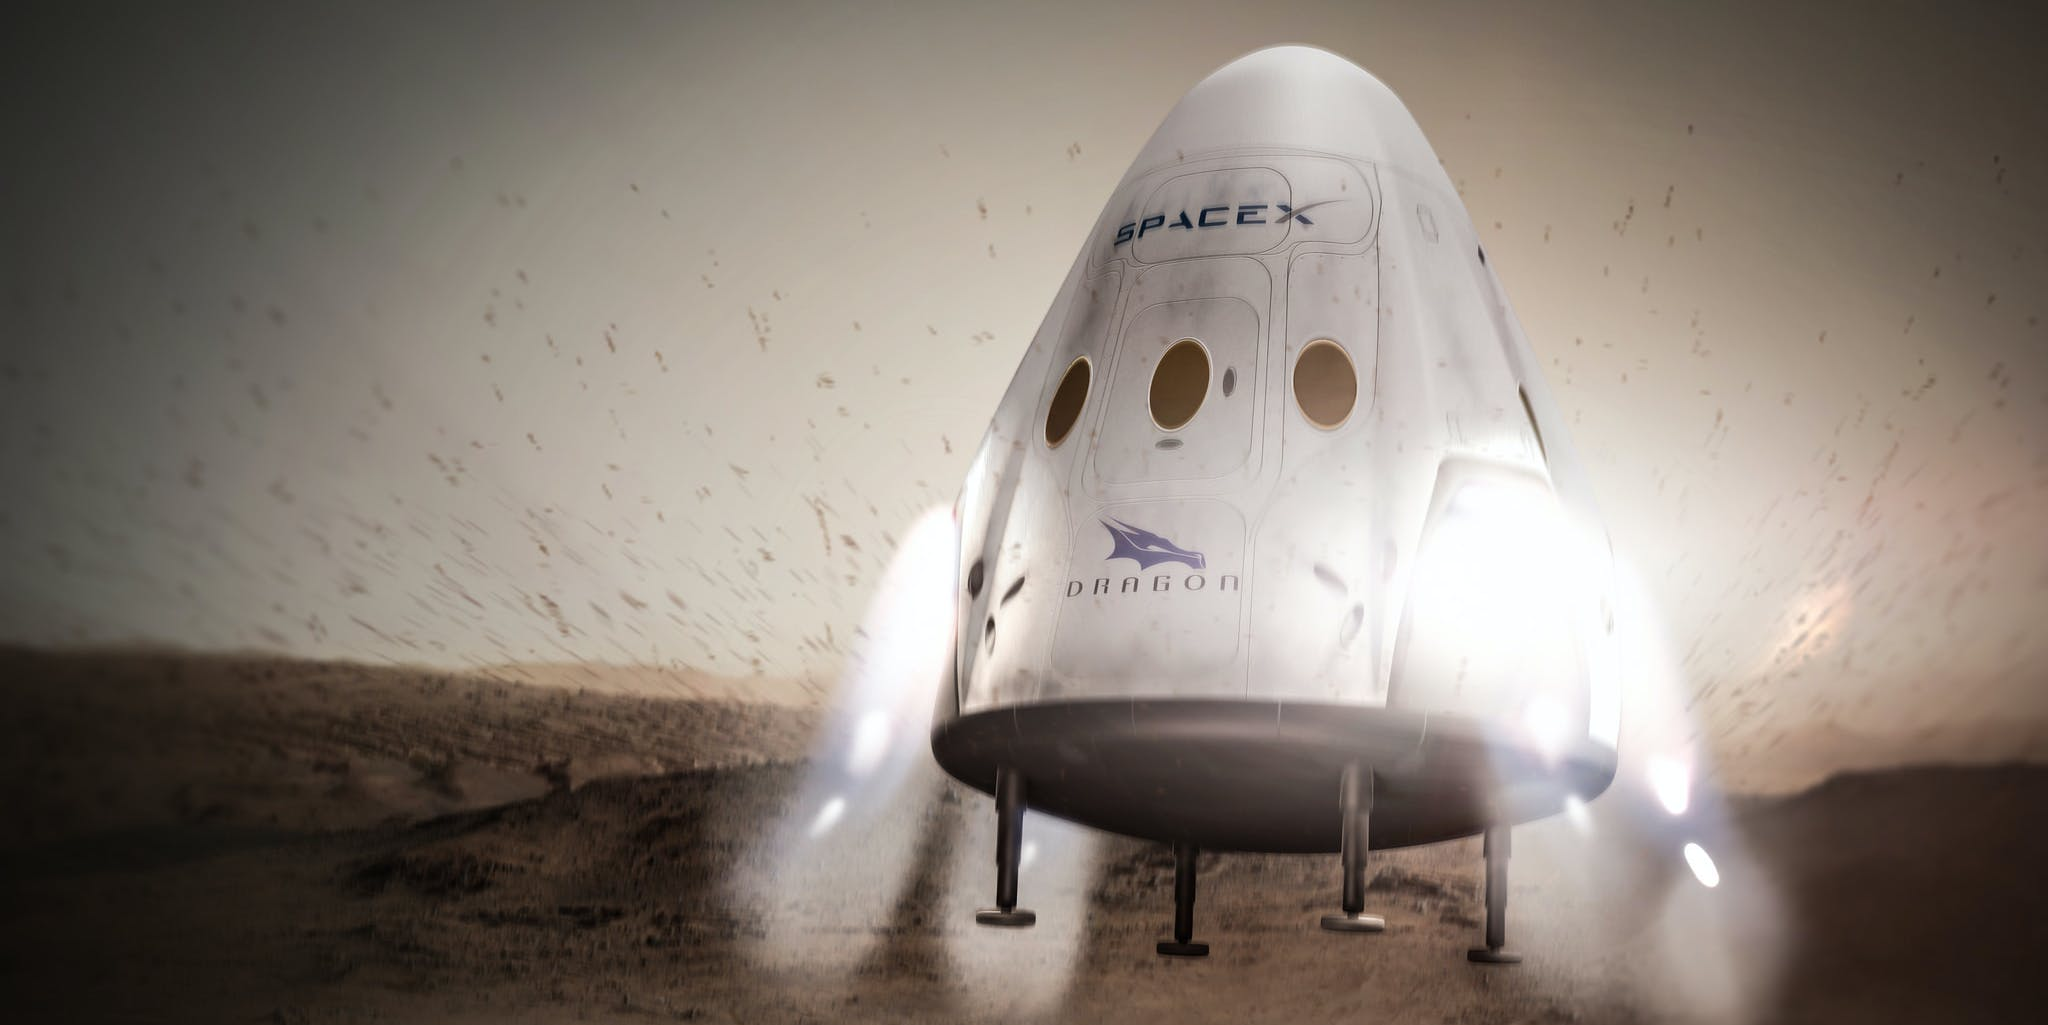 spacex red dragon nasa